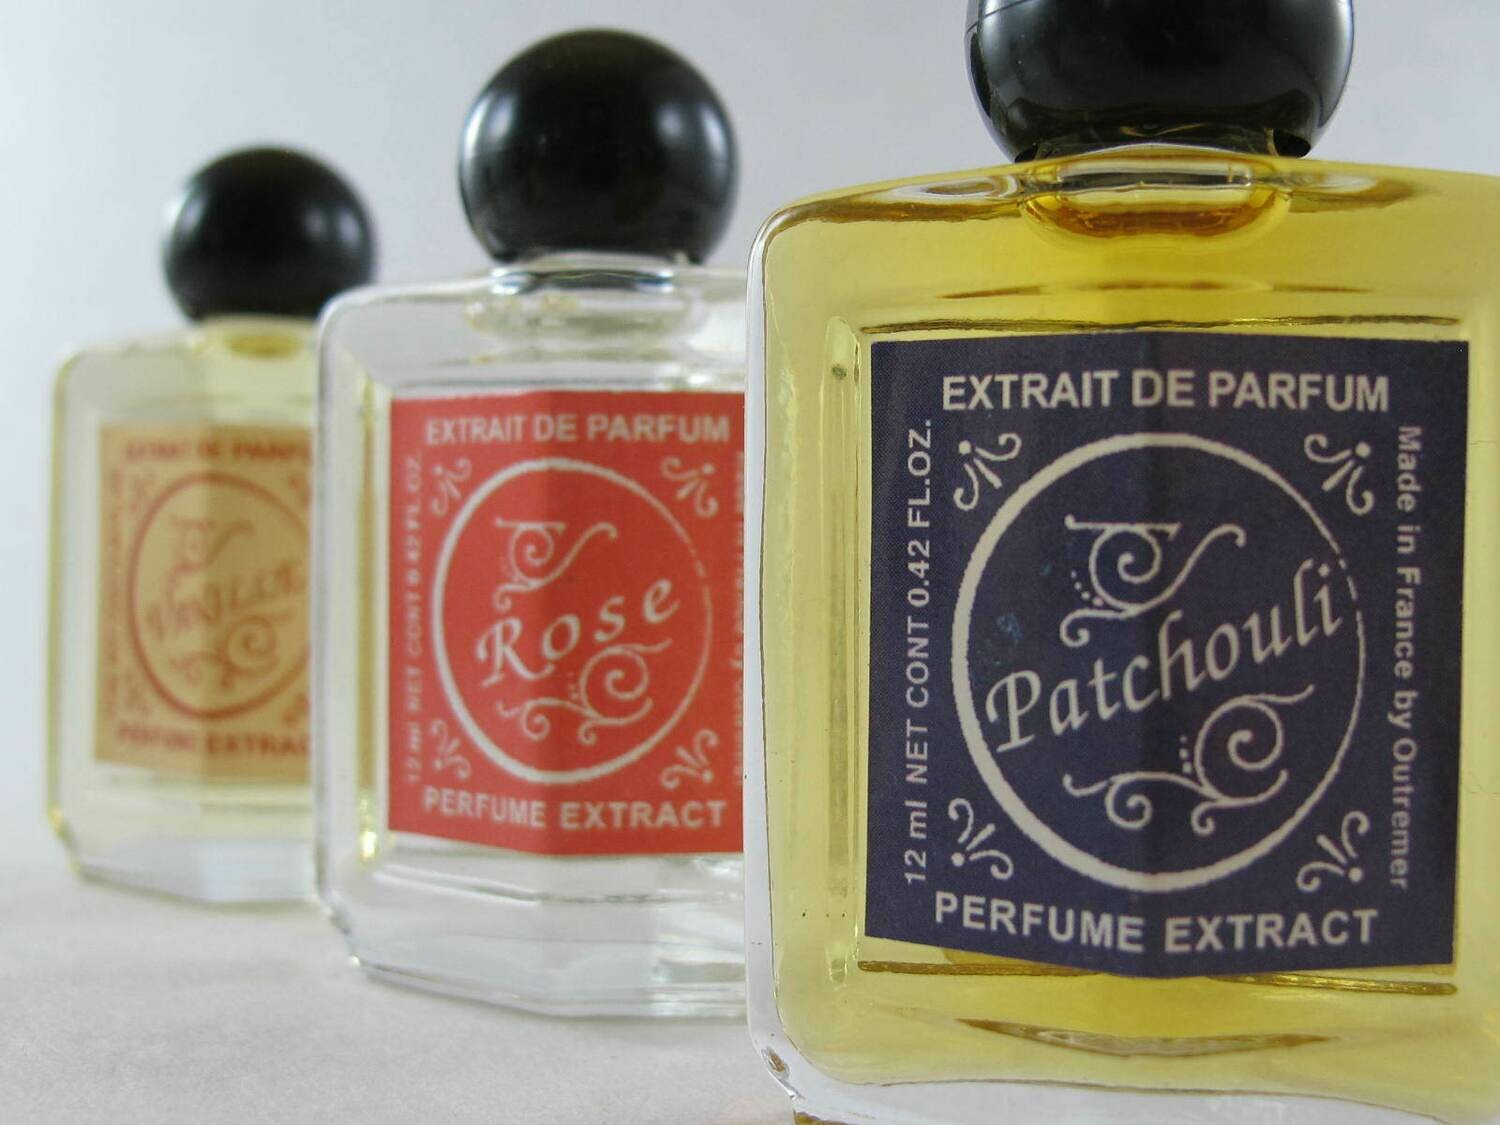 Outremer perfume extract